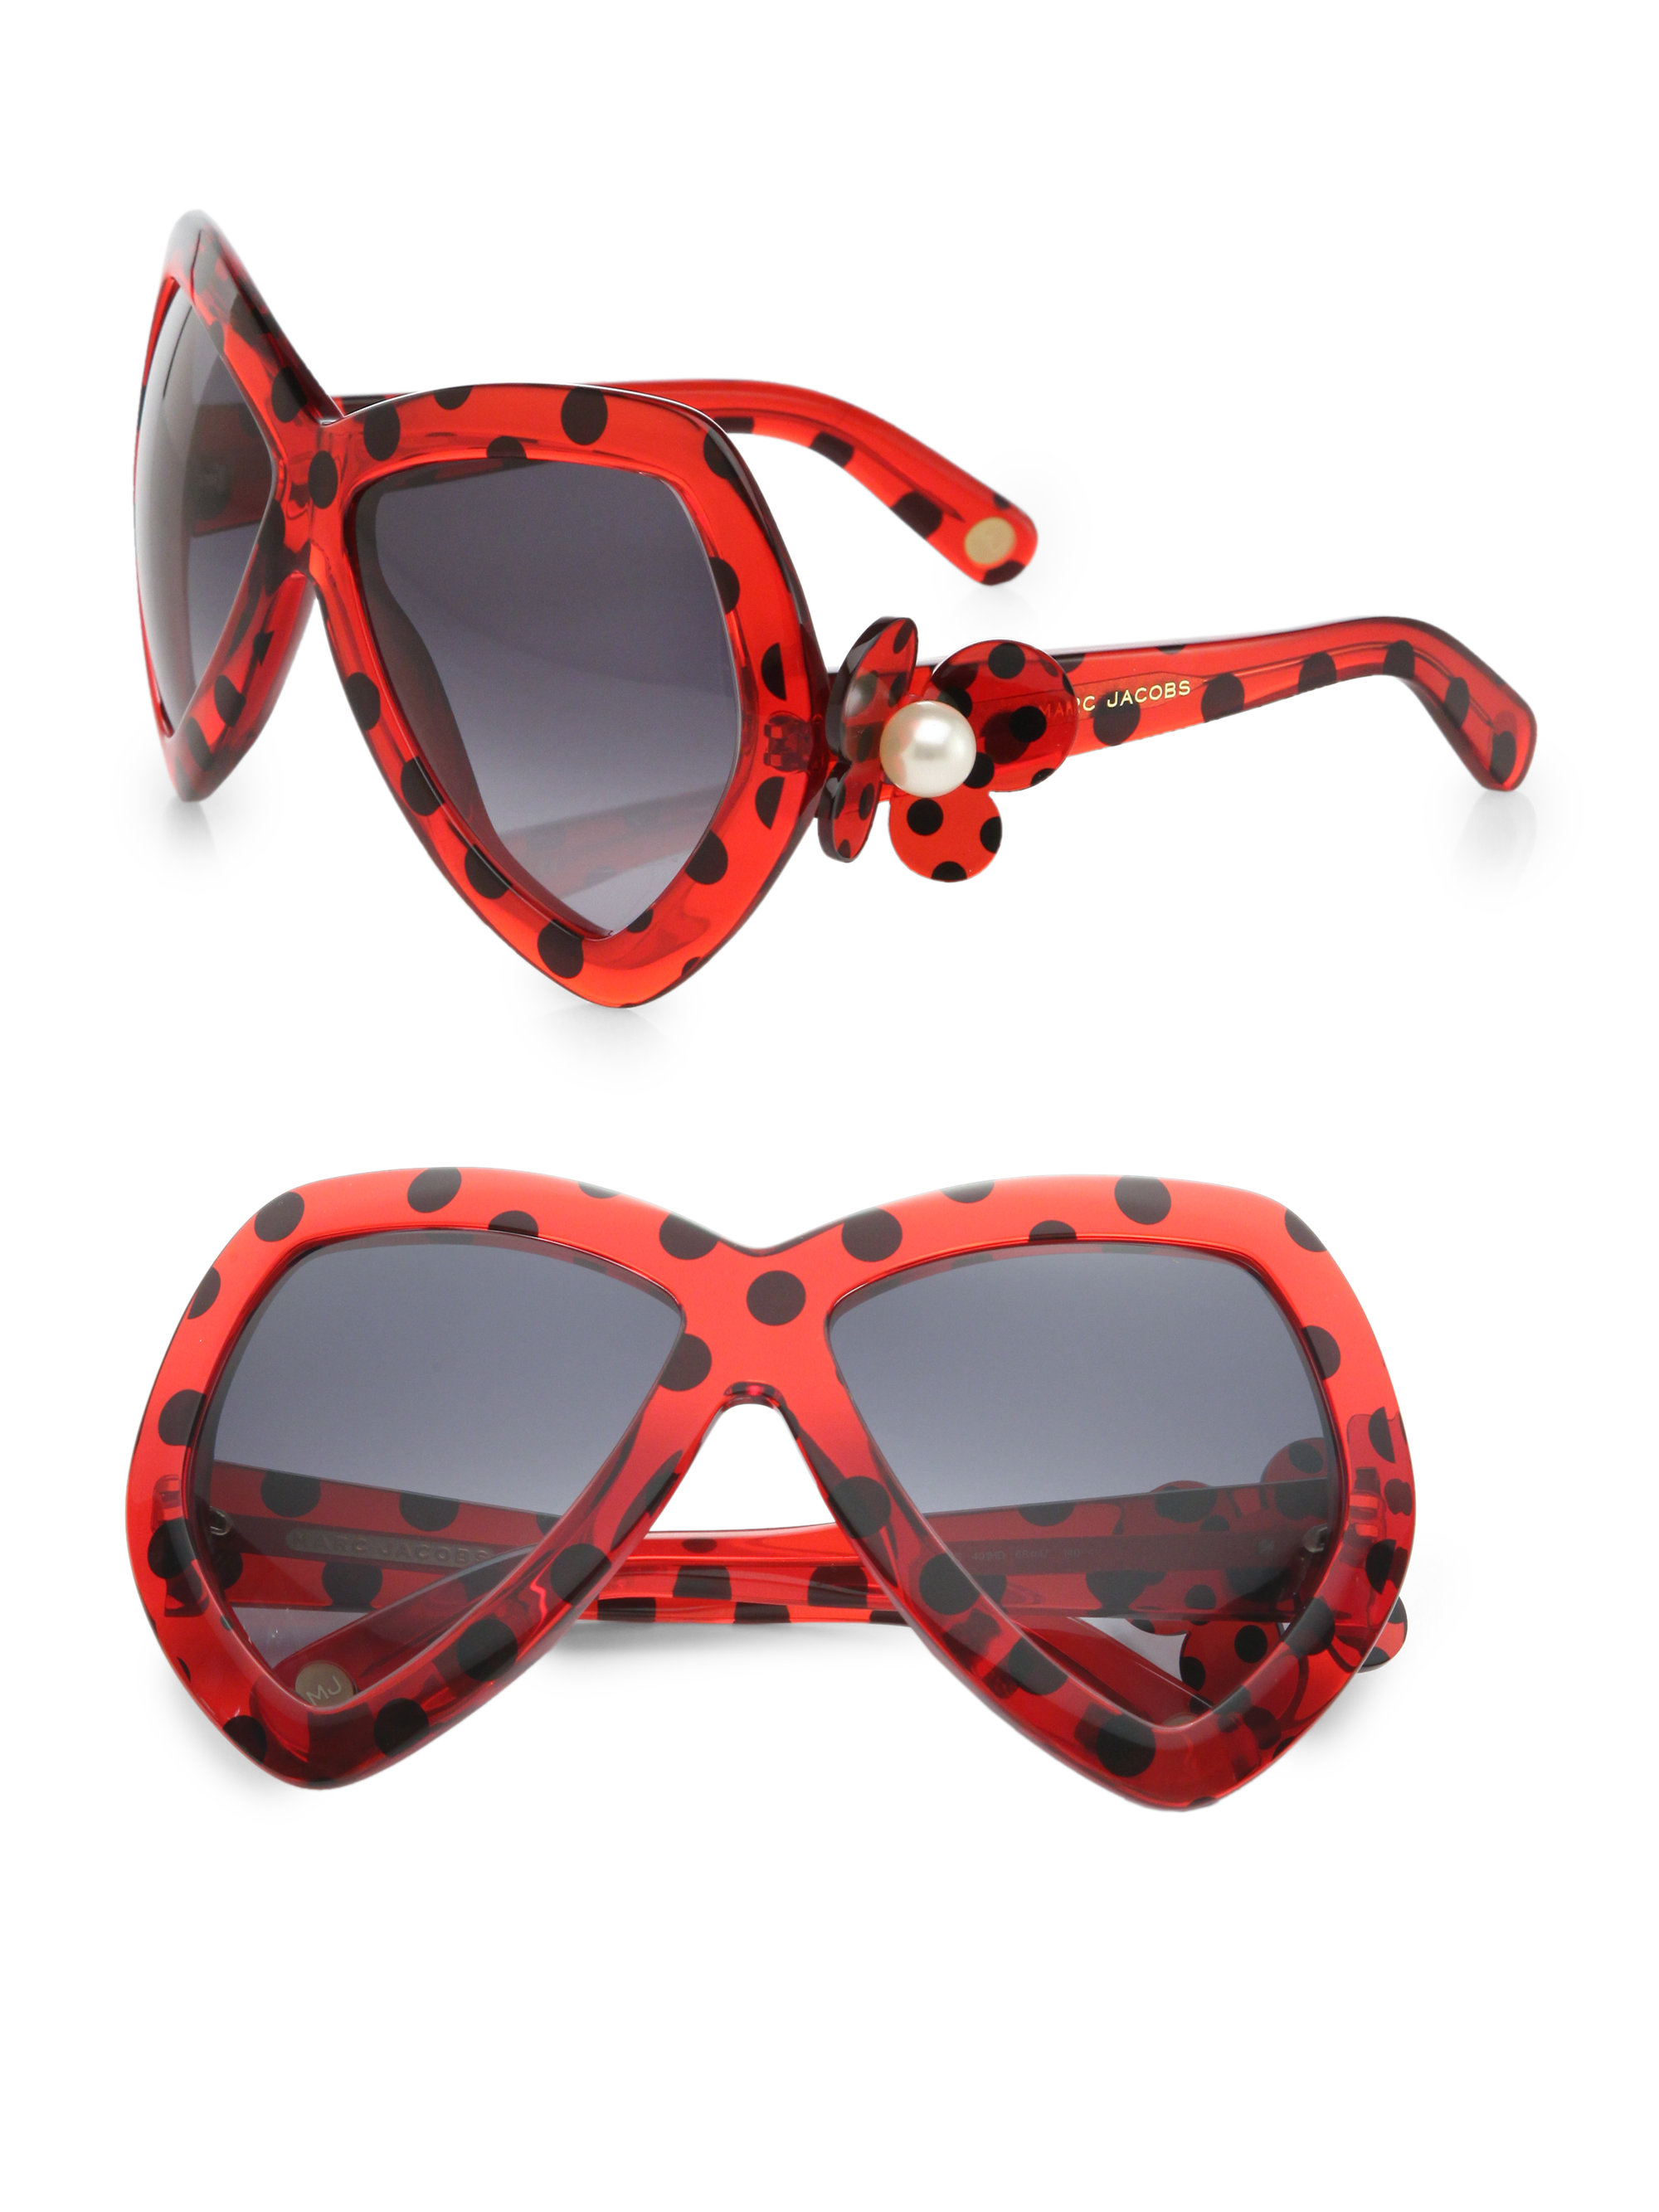 Marc Jacobs Red Sunglasses  marc jacobs dotted plastic erfly sunglasses in red lyst